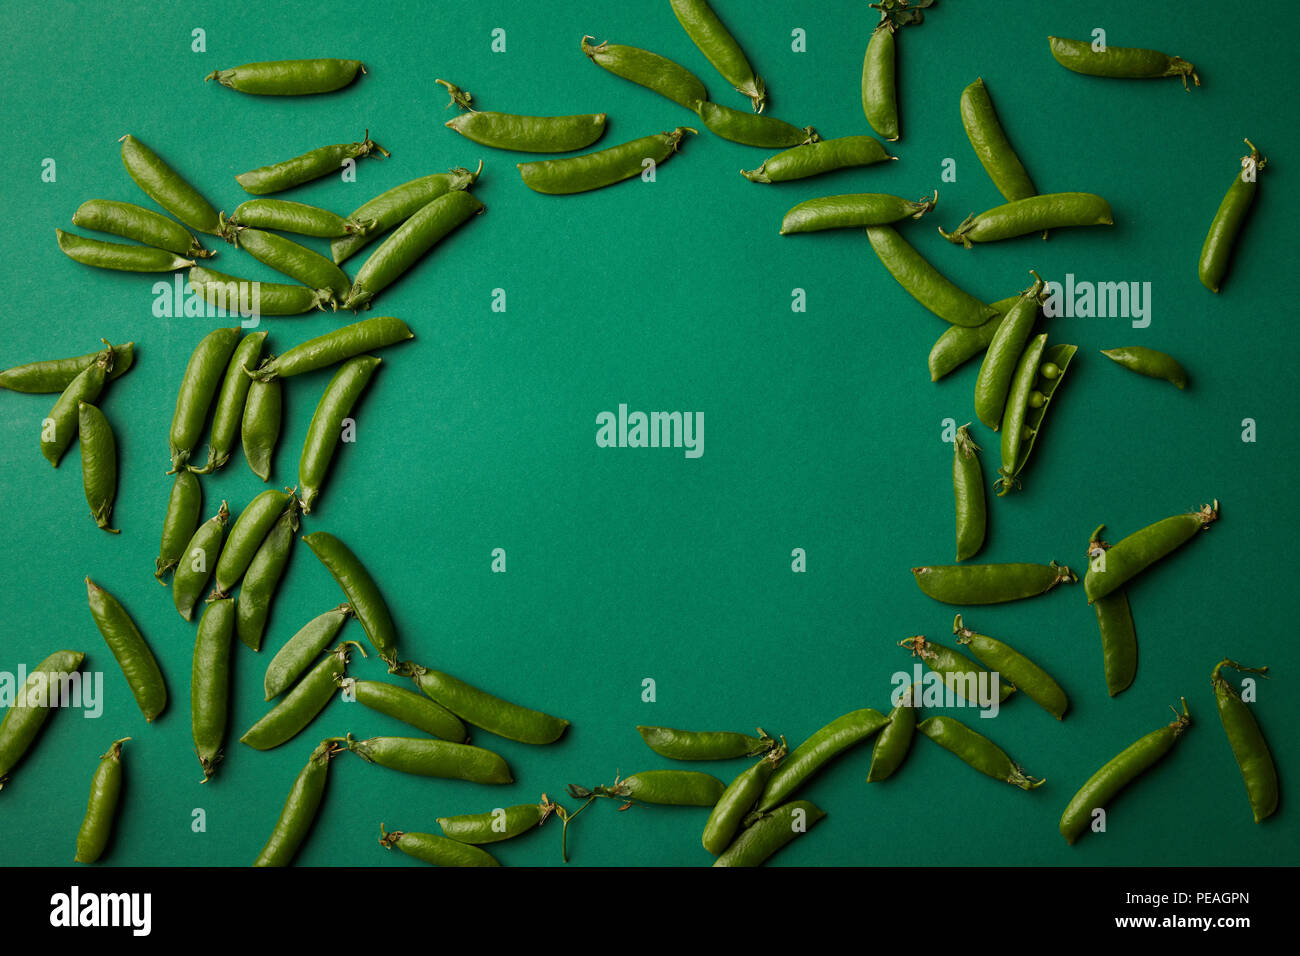 top view of round frame made of pea pods on green surface - Stock Image